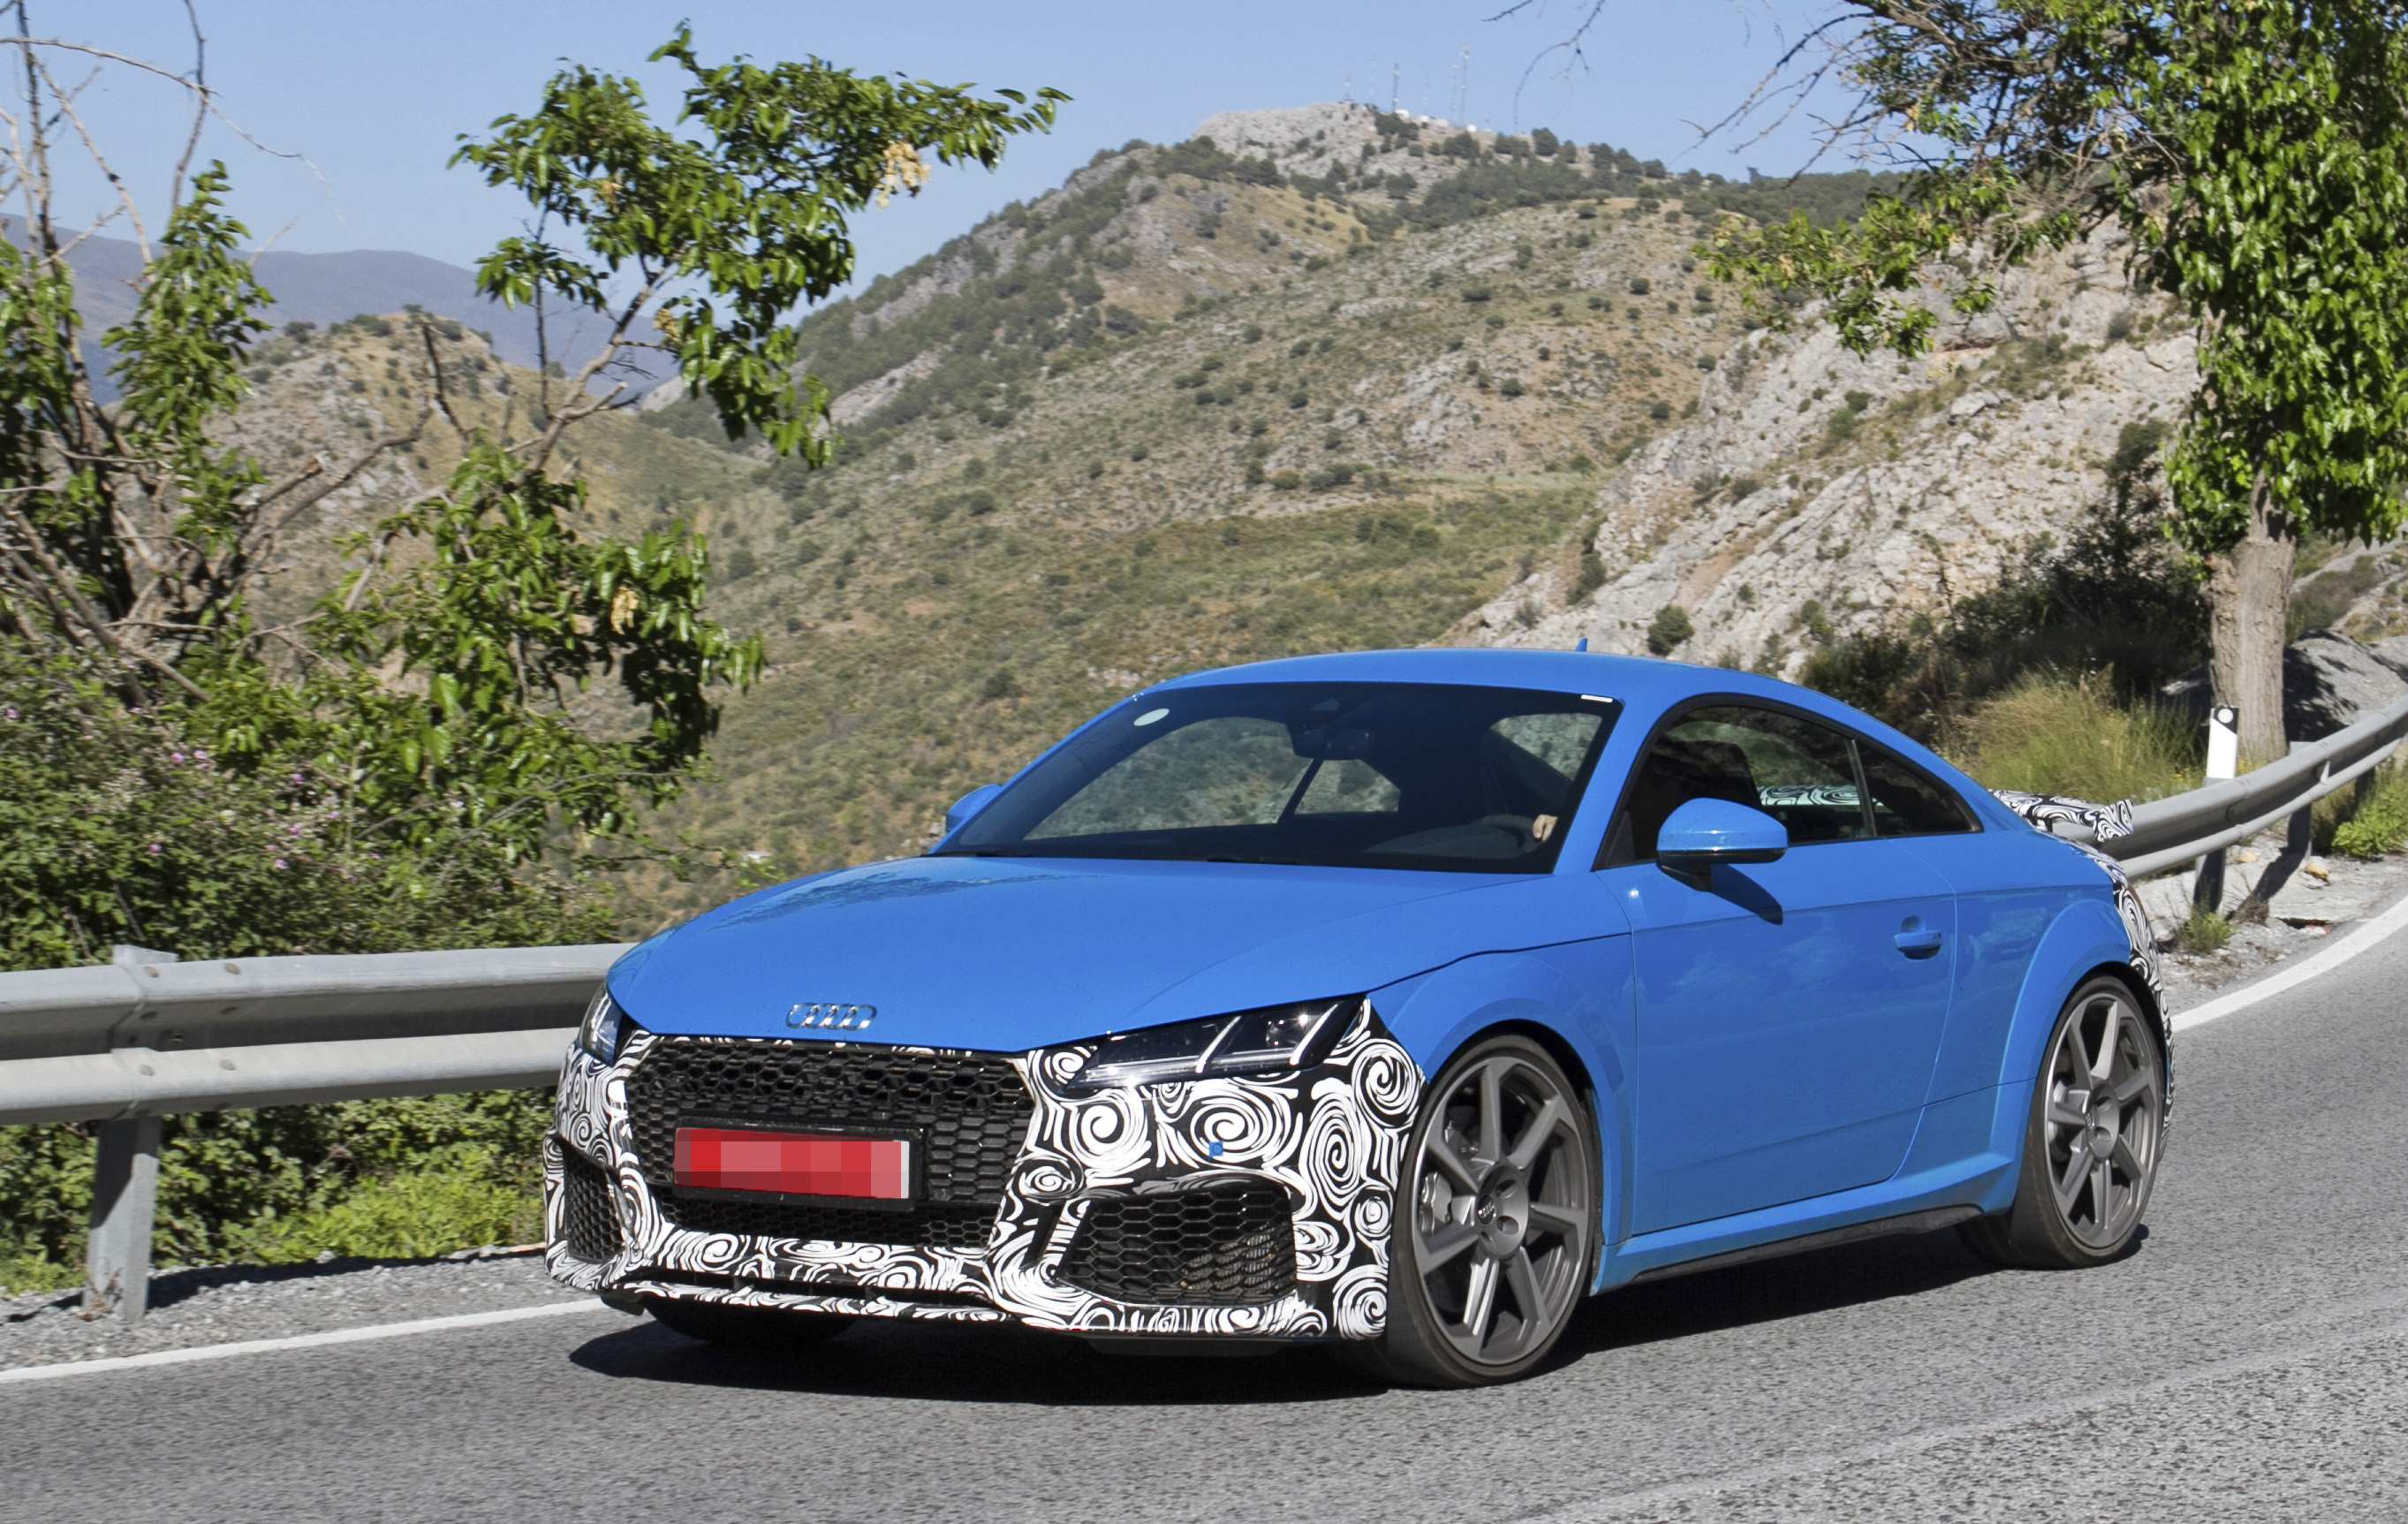 99 Concept of New Audi Tt Rs Plus 2019 Price And Review Redesign and Concept with New Audi Tt Rs Plus 2019 Price And Review